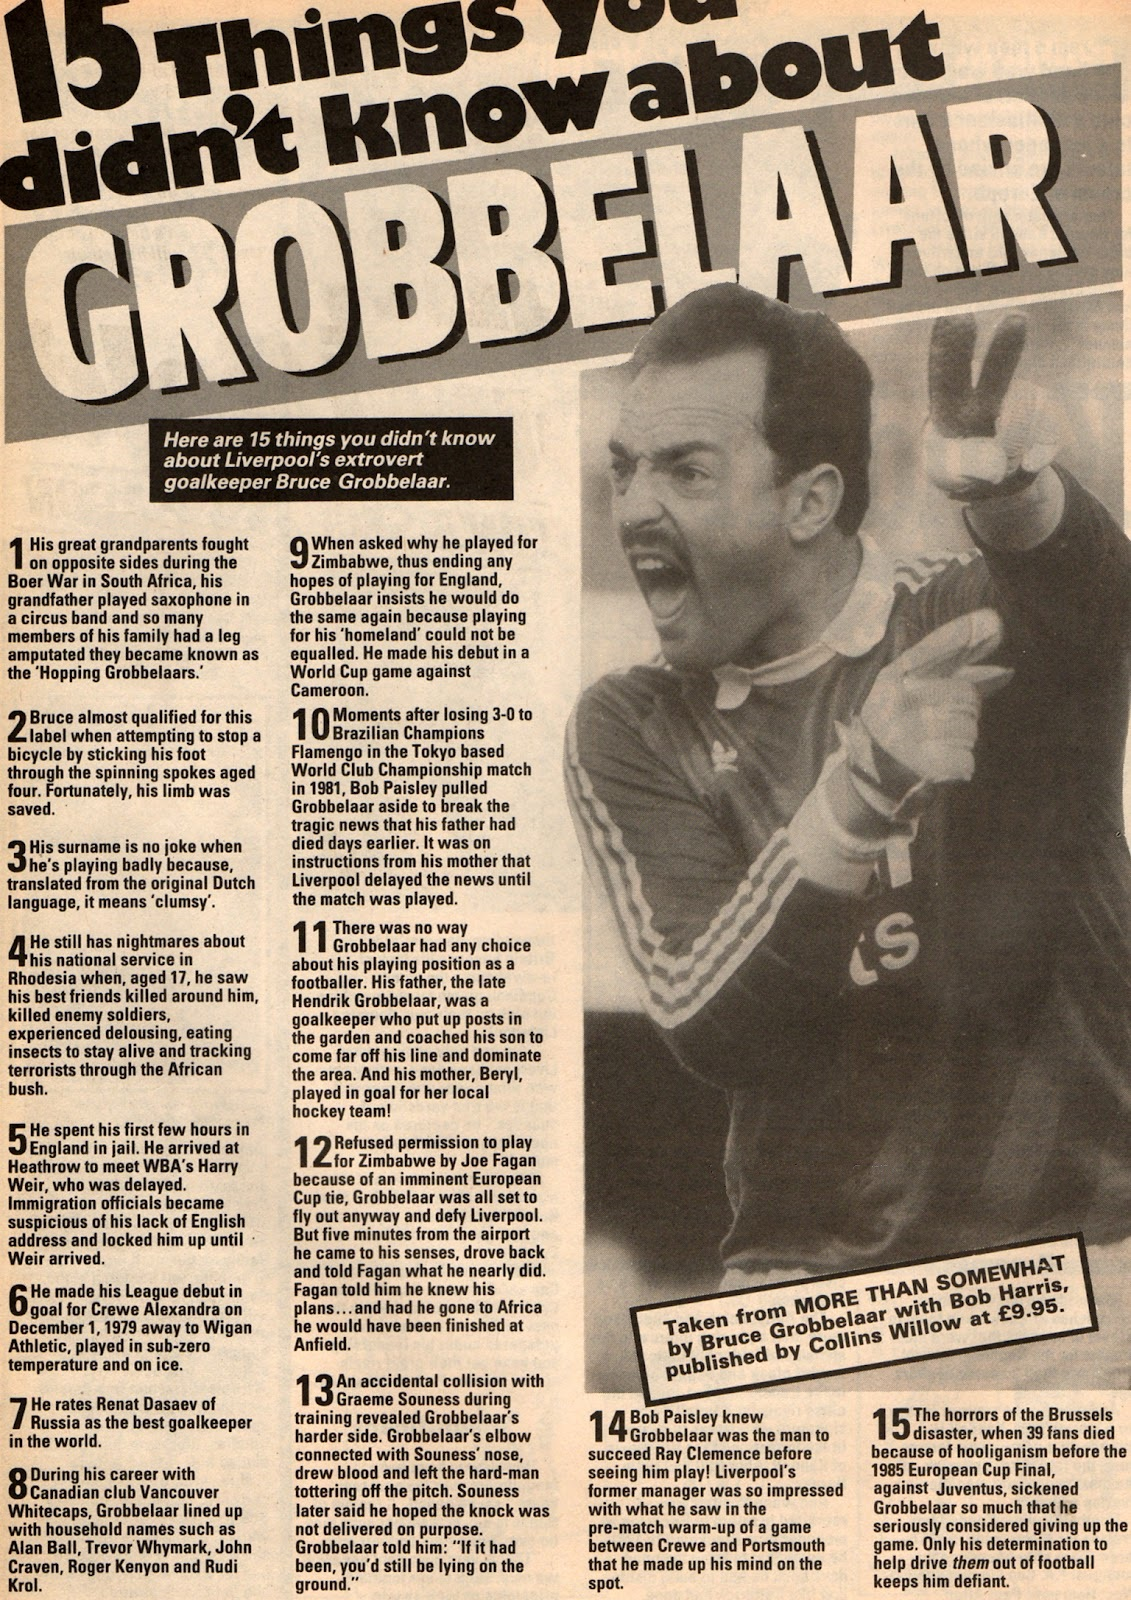 15 things you didn't know about Bruce Grobbelaar